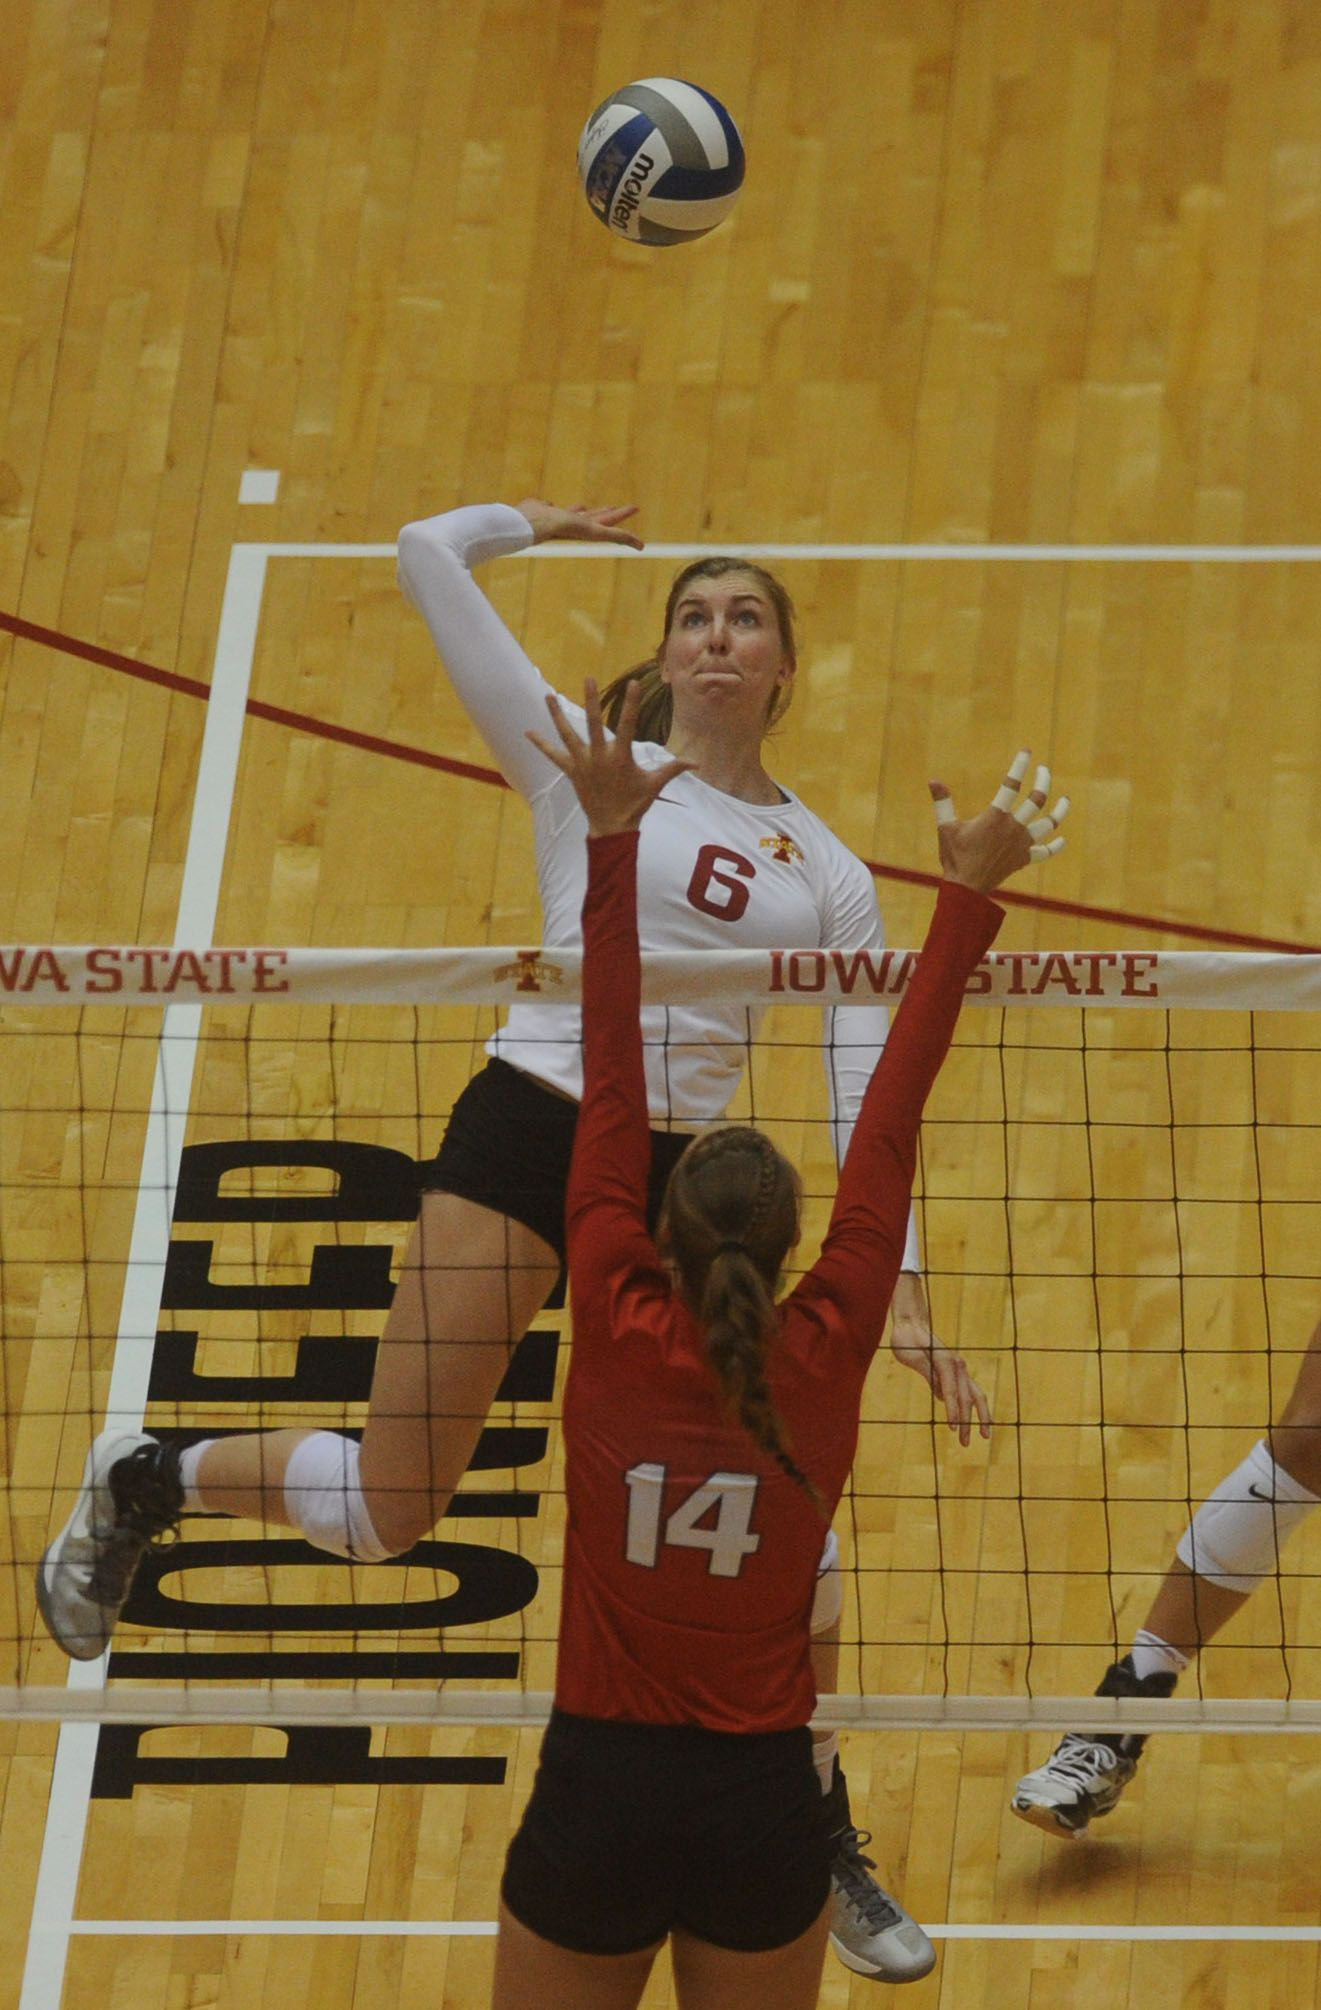 Iowa State S Outside Hitter Alexis Conaway Spikes The Ball Over Nebraska S Outside Hitter Kelsey Fien During Second Set At Hilton With Images Iowa State Iowa State Cyclones